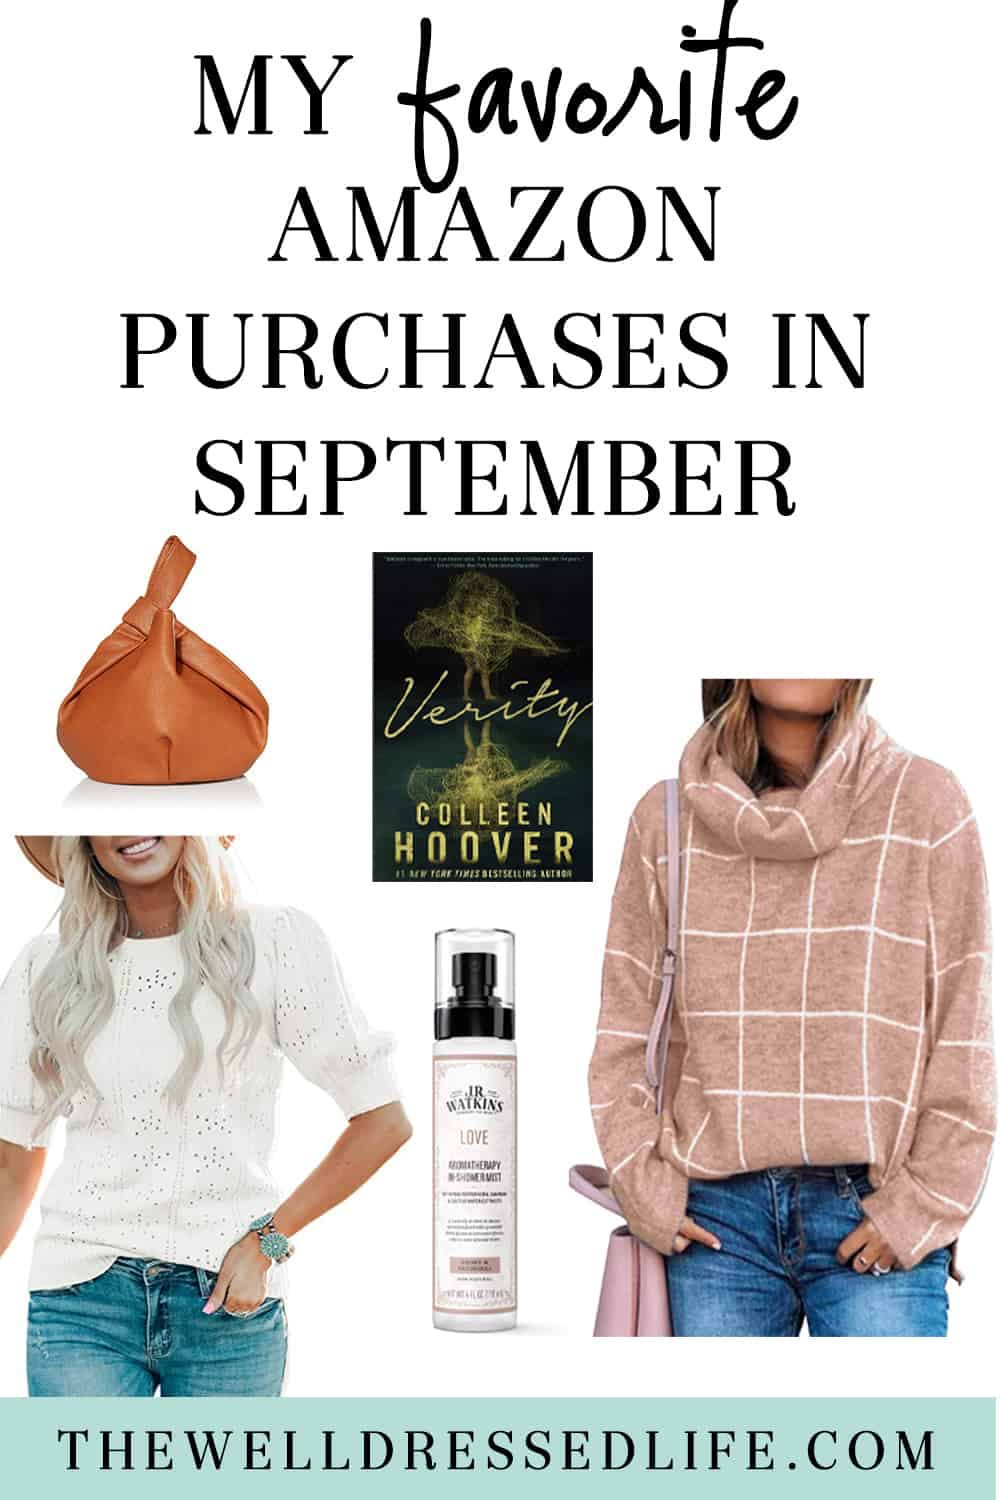 My Favorite Amazon Purchases in September